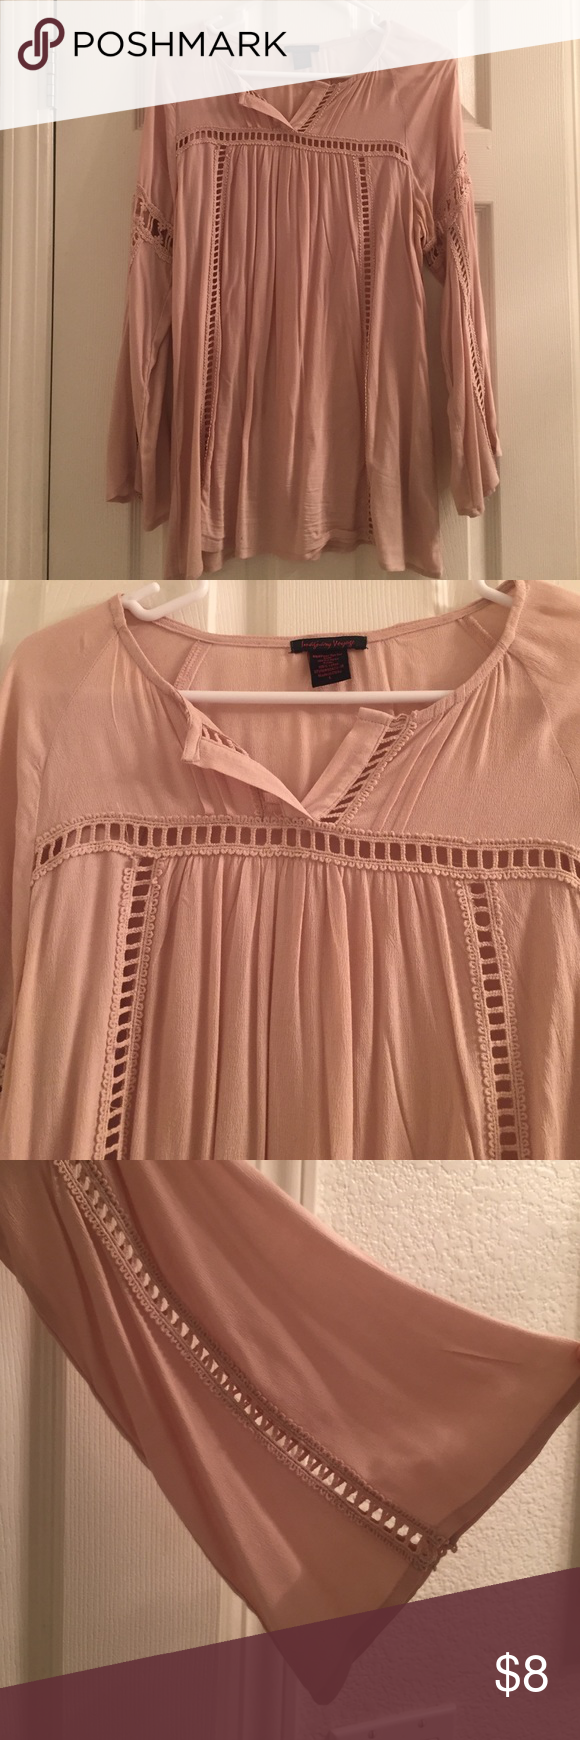 Cream color blouse Beautiful cream blouse in great condition. Bell sleeves Tops Blouses